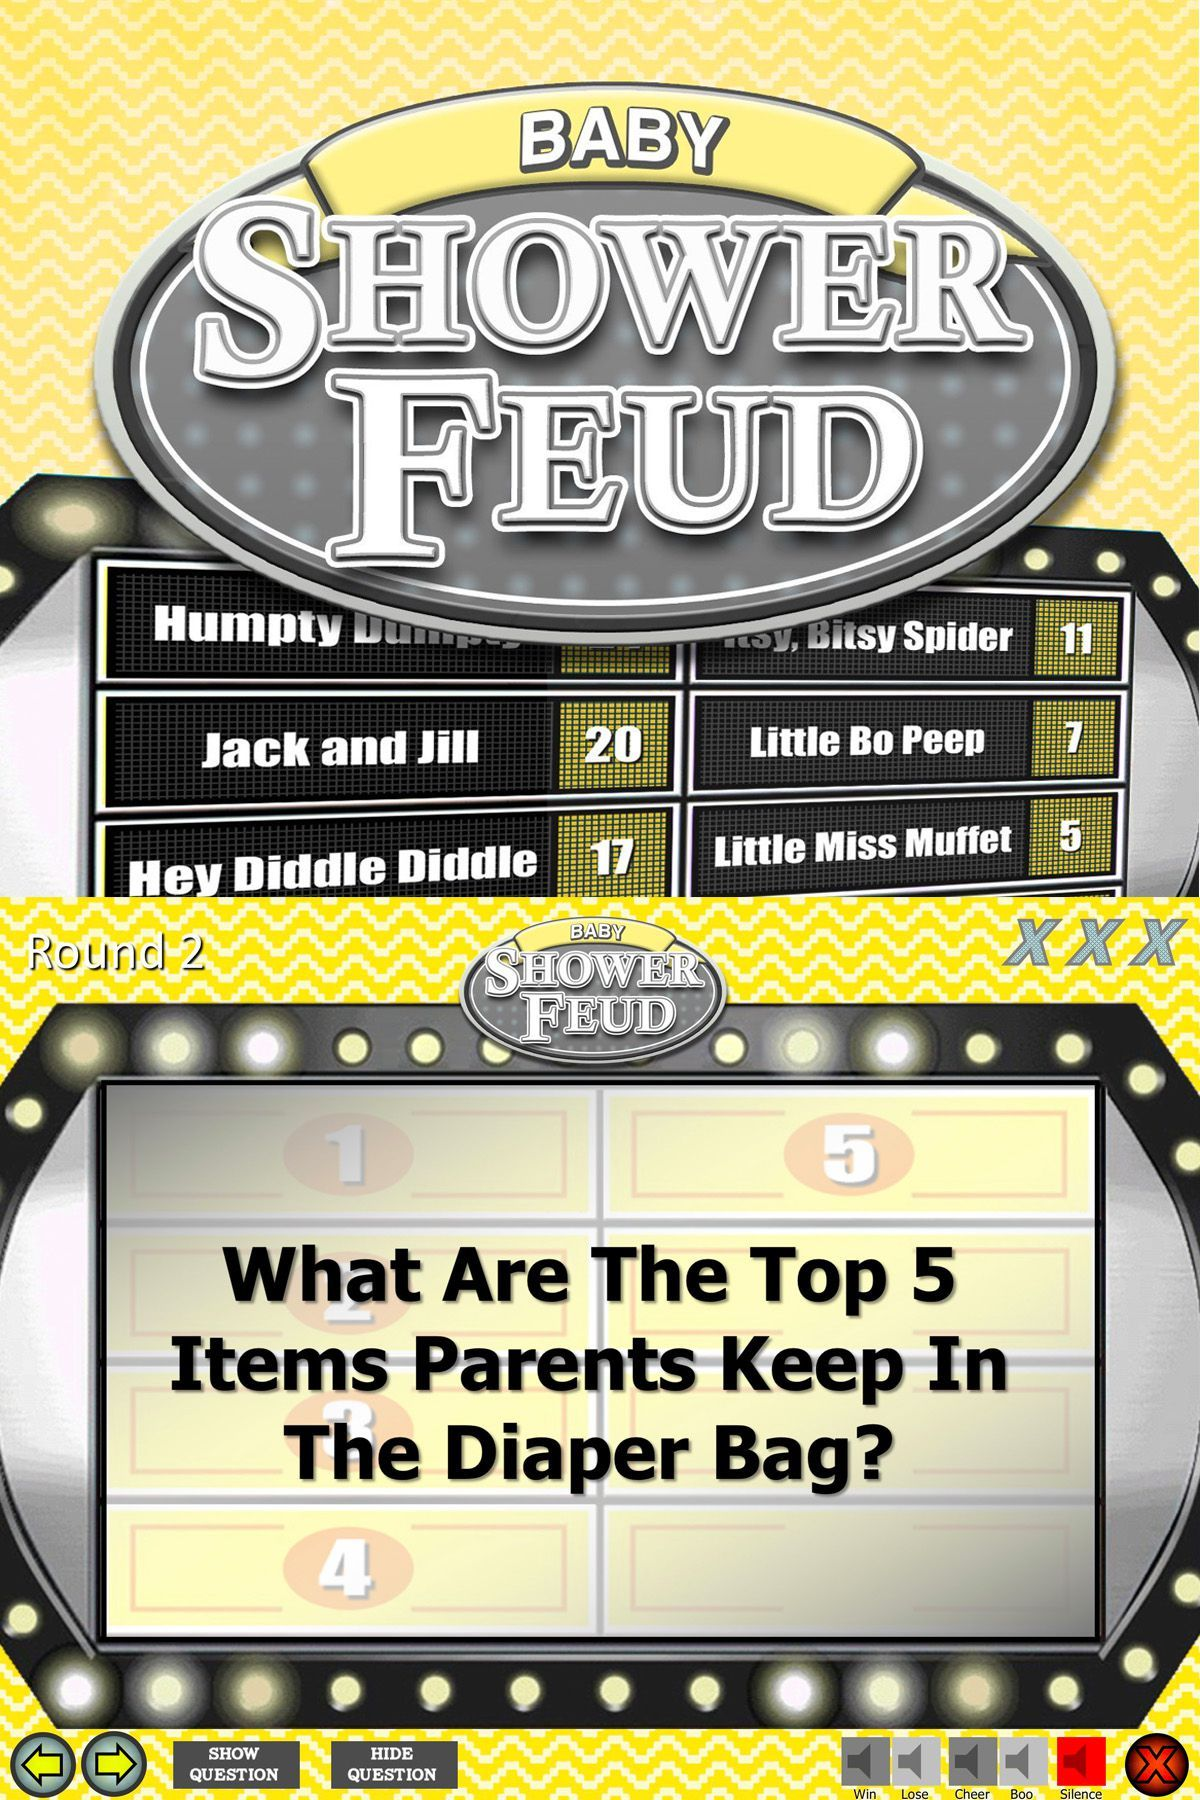 Easy Family Feud for Floor or Friends Programming ideas